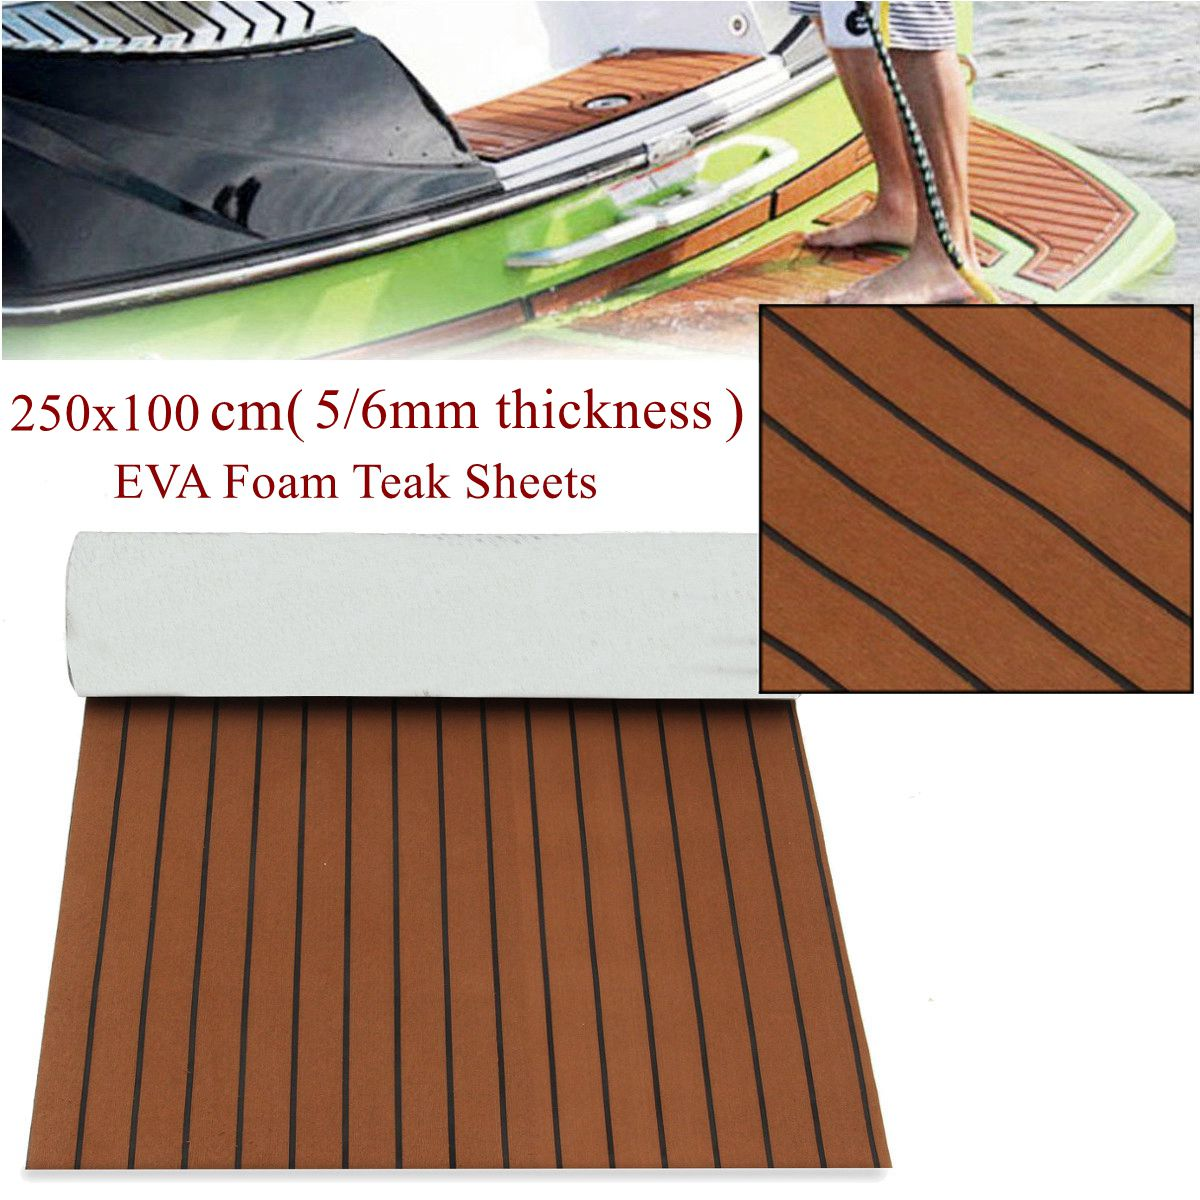 2500x1000x6mm Thickness Self-Adhesive EVA Foam Faux Teak Decking Sheet Dark Brown Marine Boat DIY Car Protective Floor Carpet2500x1000x6mm Thickness Self-Adhesive EVA Foam Faux Teak Decking Sheet Dark Brown Marine Boat DIY Car Protective Floor Carpet